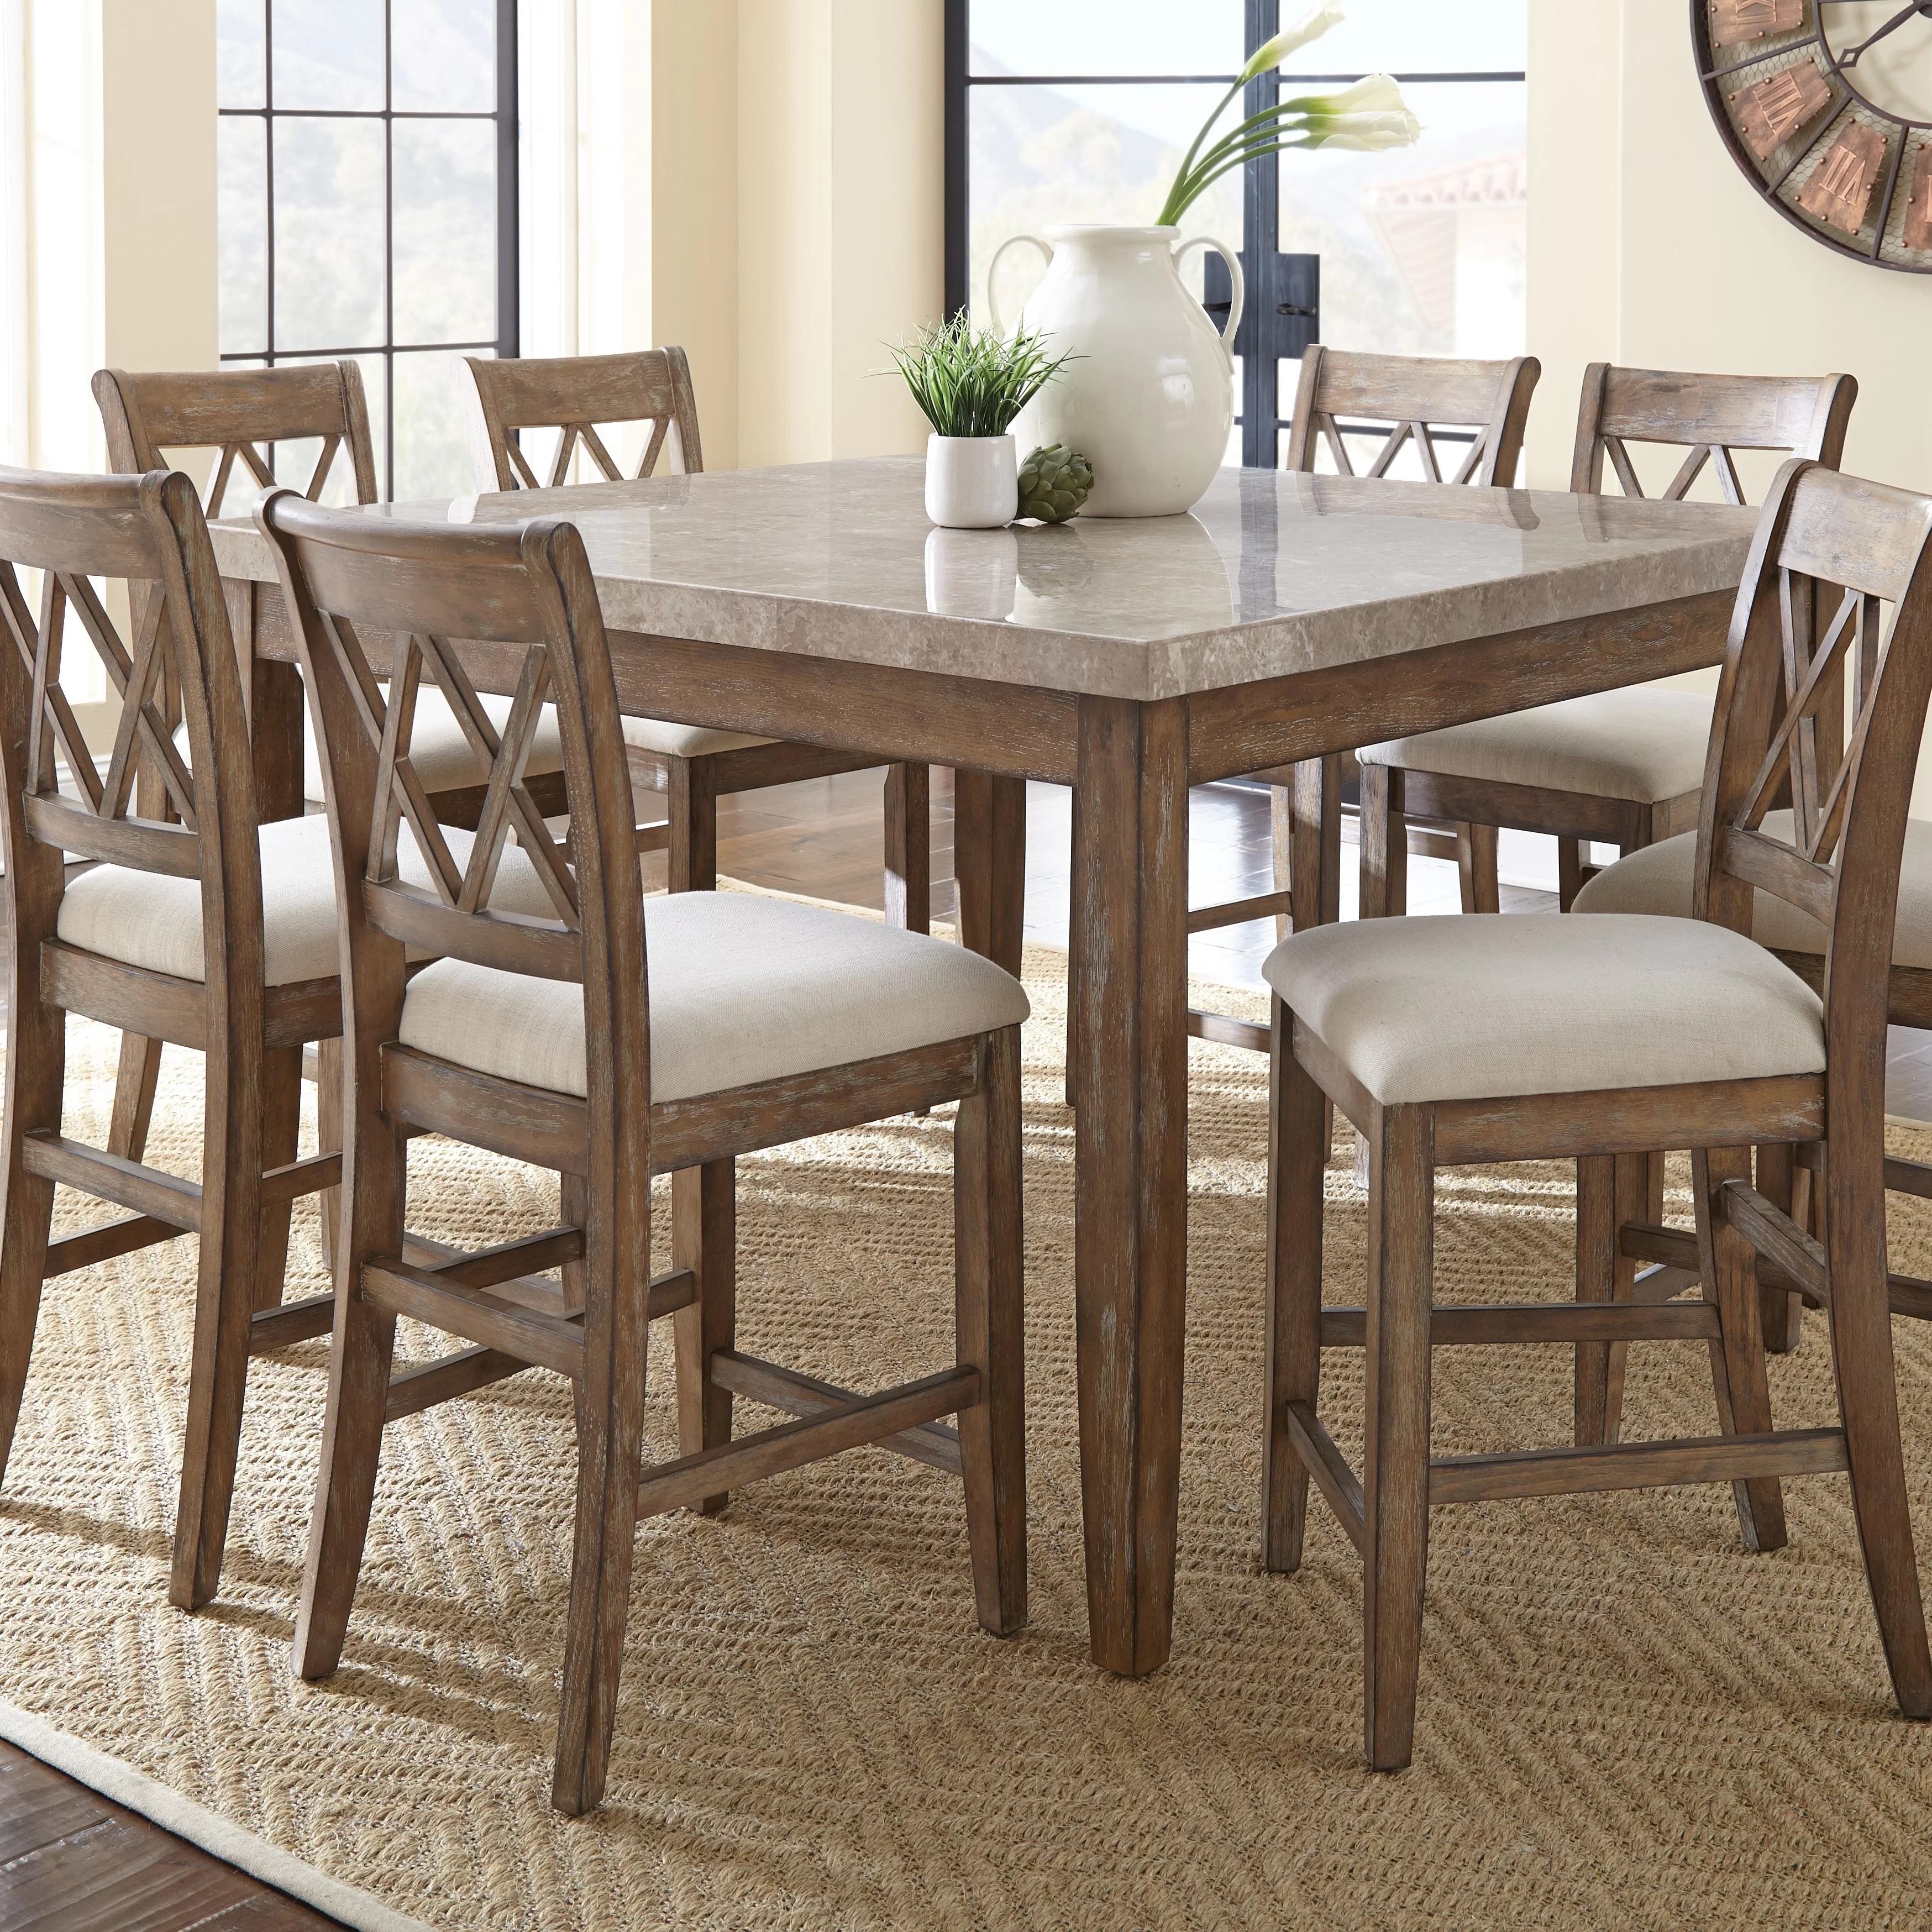 9 piece kitchen dining room sets c a~ counter height kitchen tables Lewisville 9 Piece Counter Height Dining Set